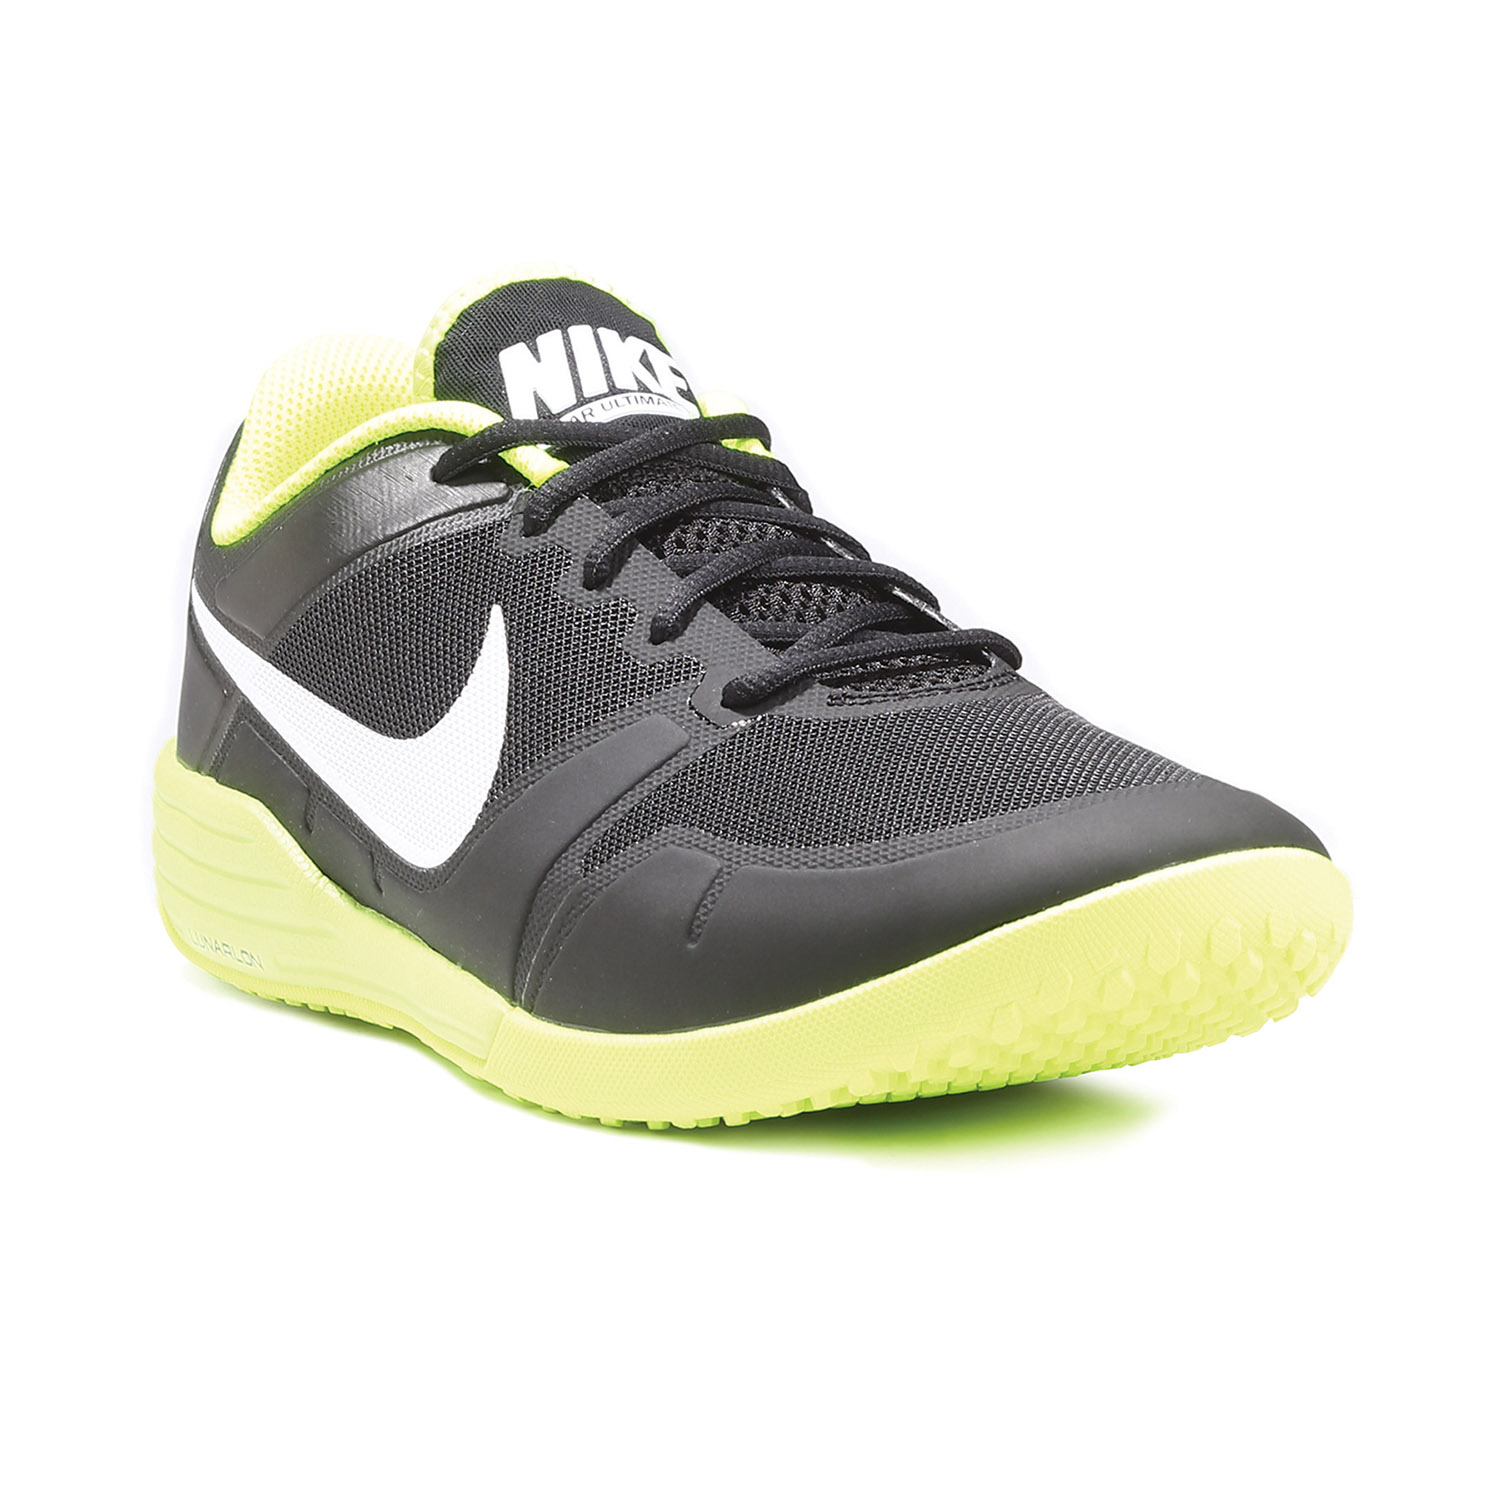 What Cross Training Shoes Should I Buy